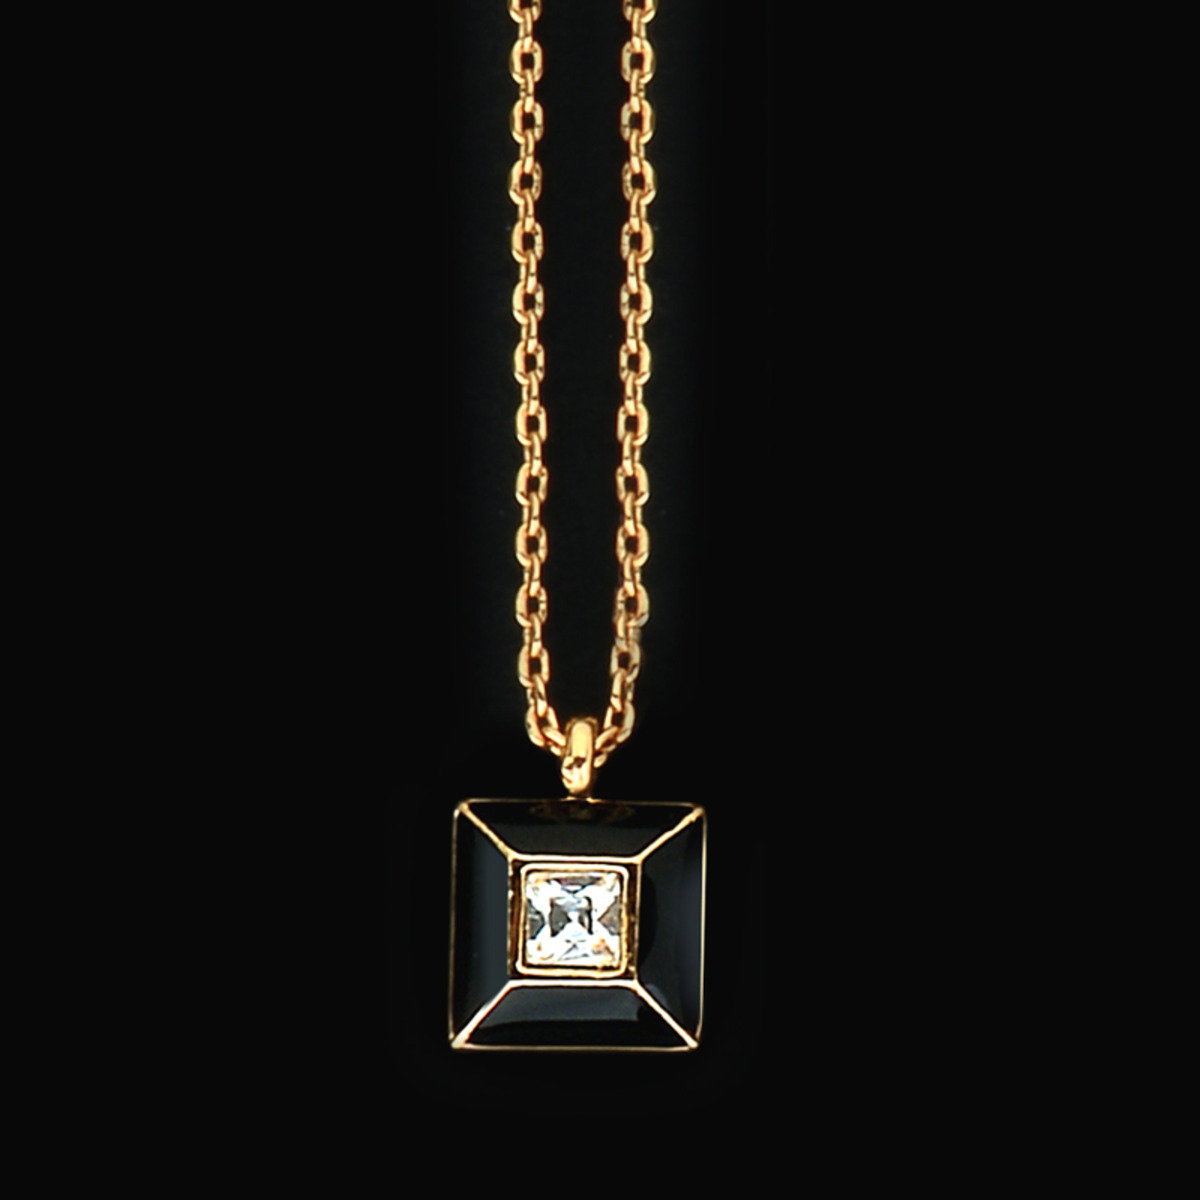 Pyramide necklace